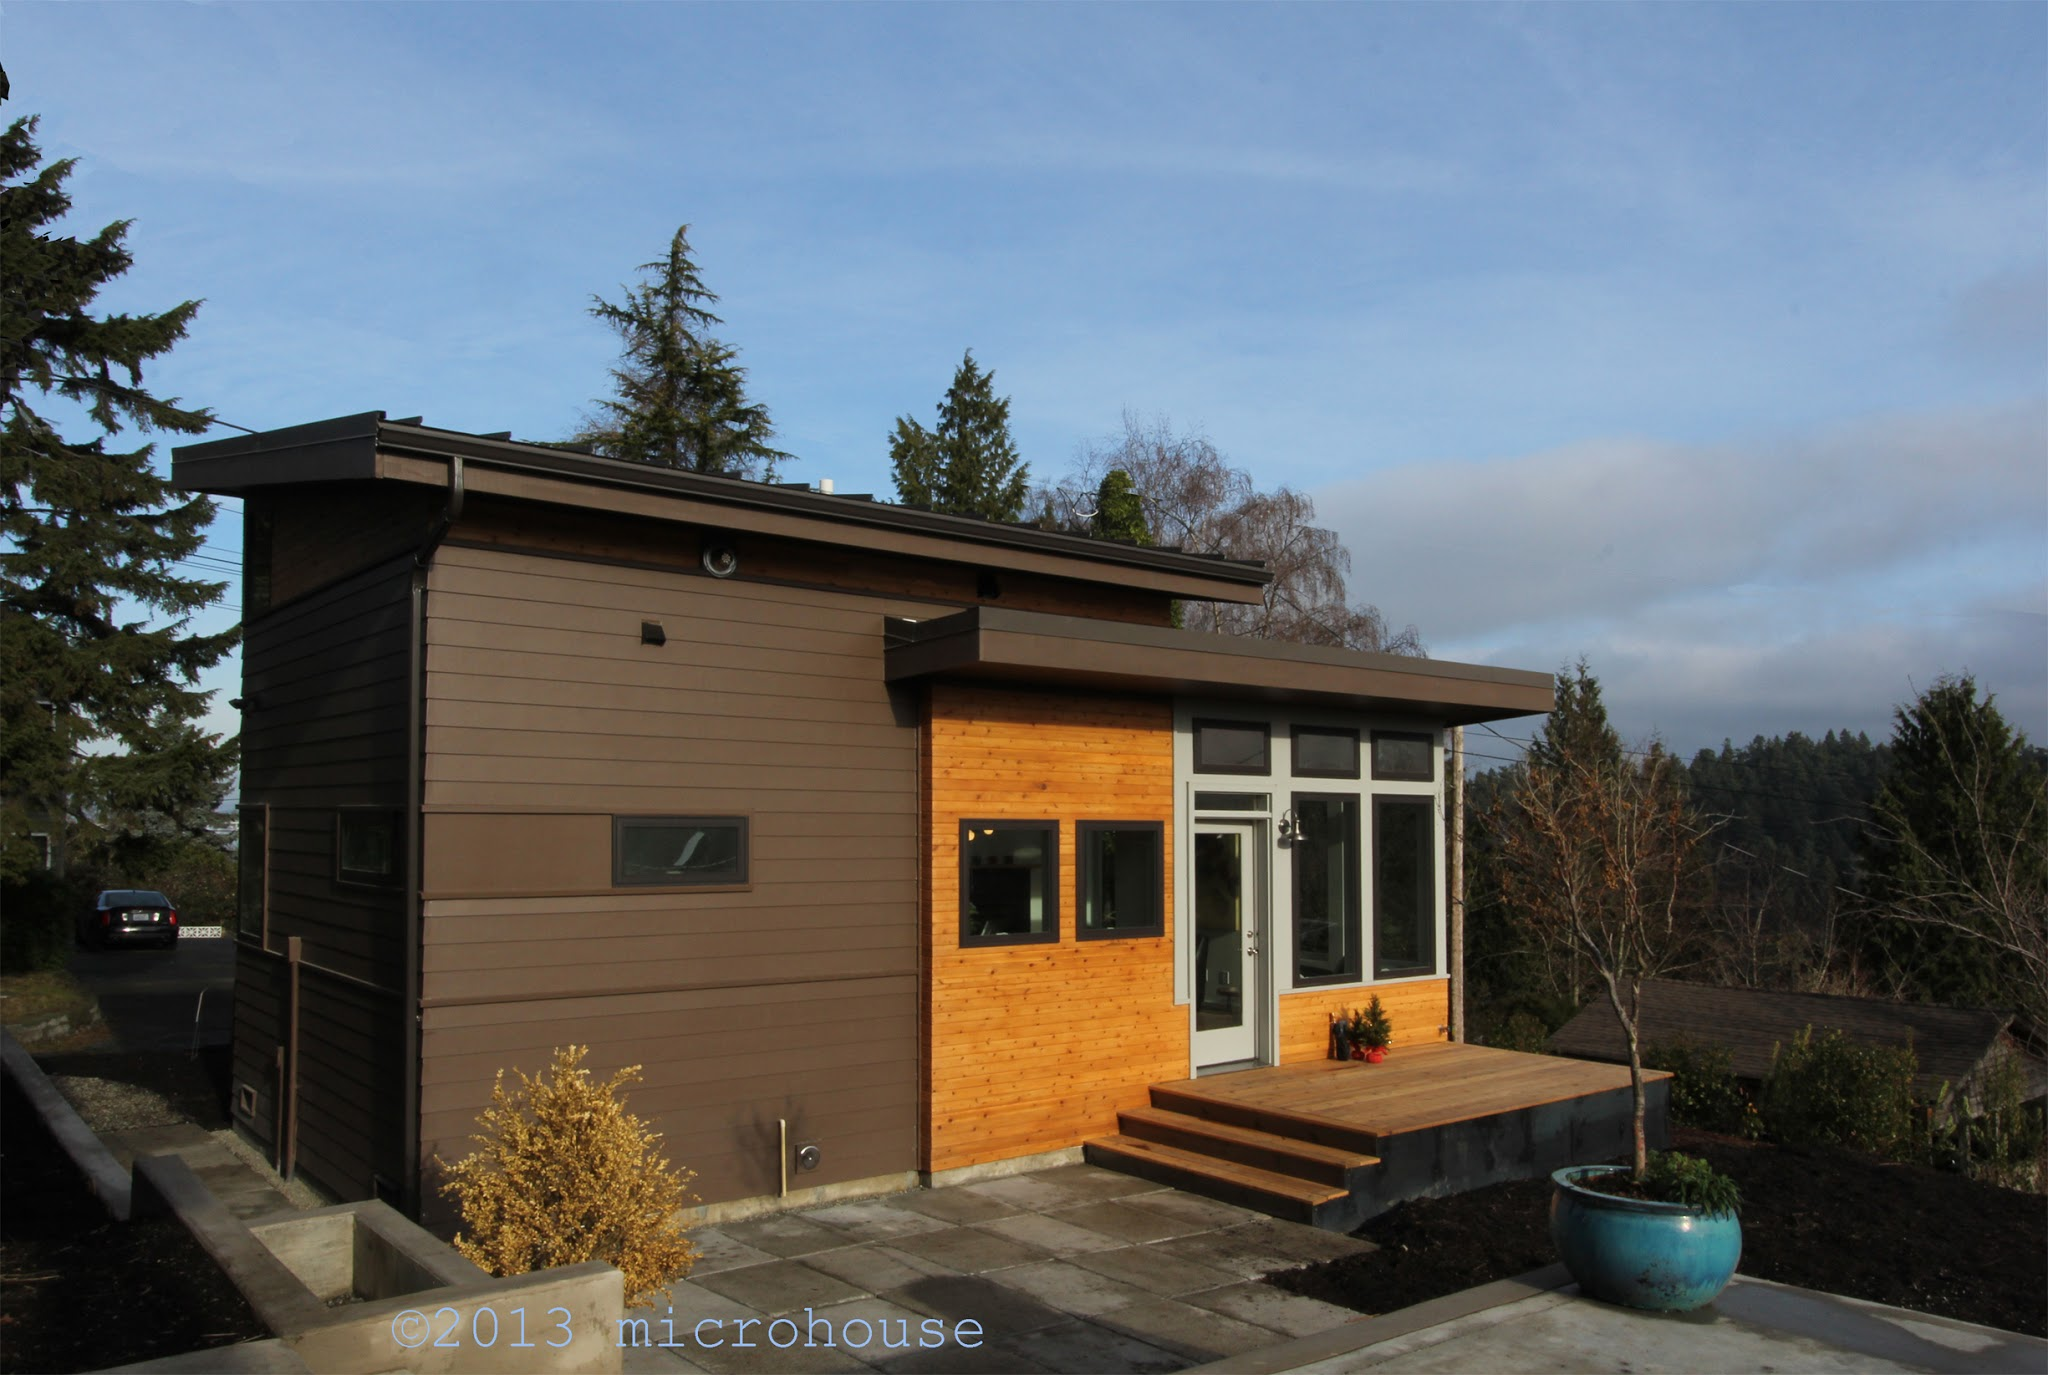 Modern Backyard Cottage In Seattle With One Bedroom And A Loft In 650 Sq Ft.